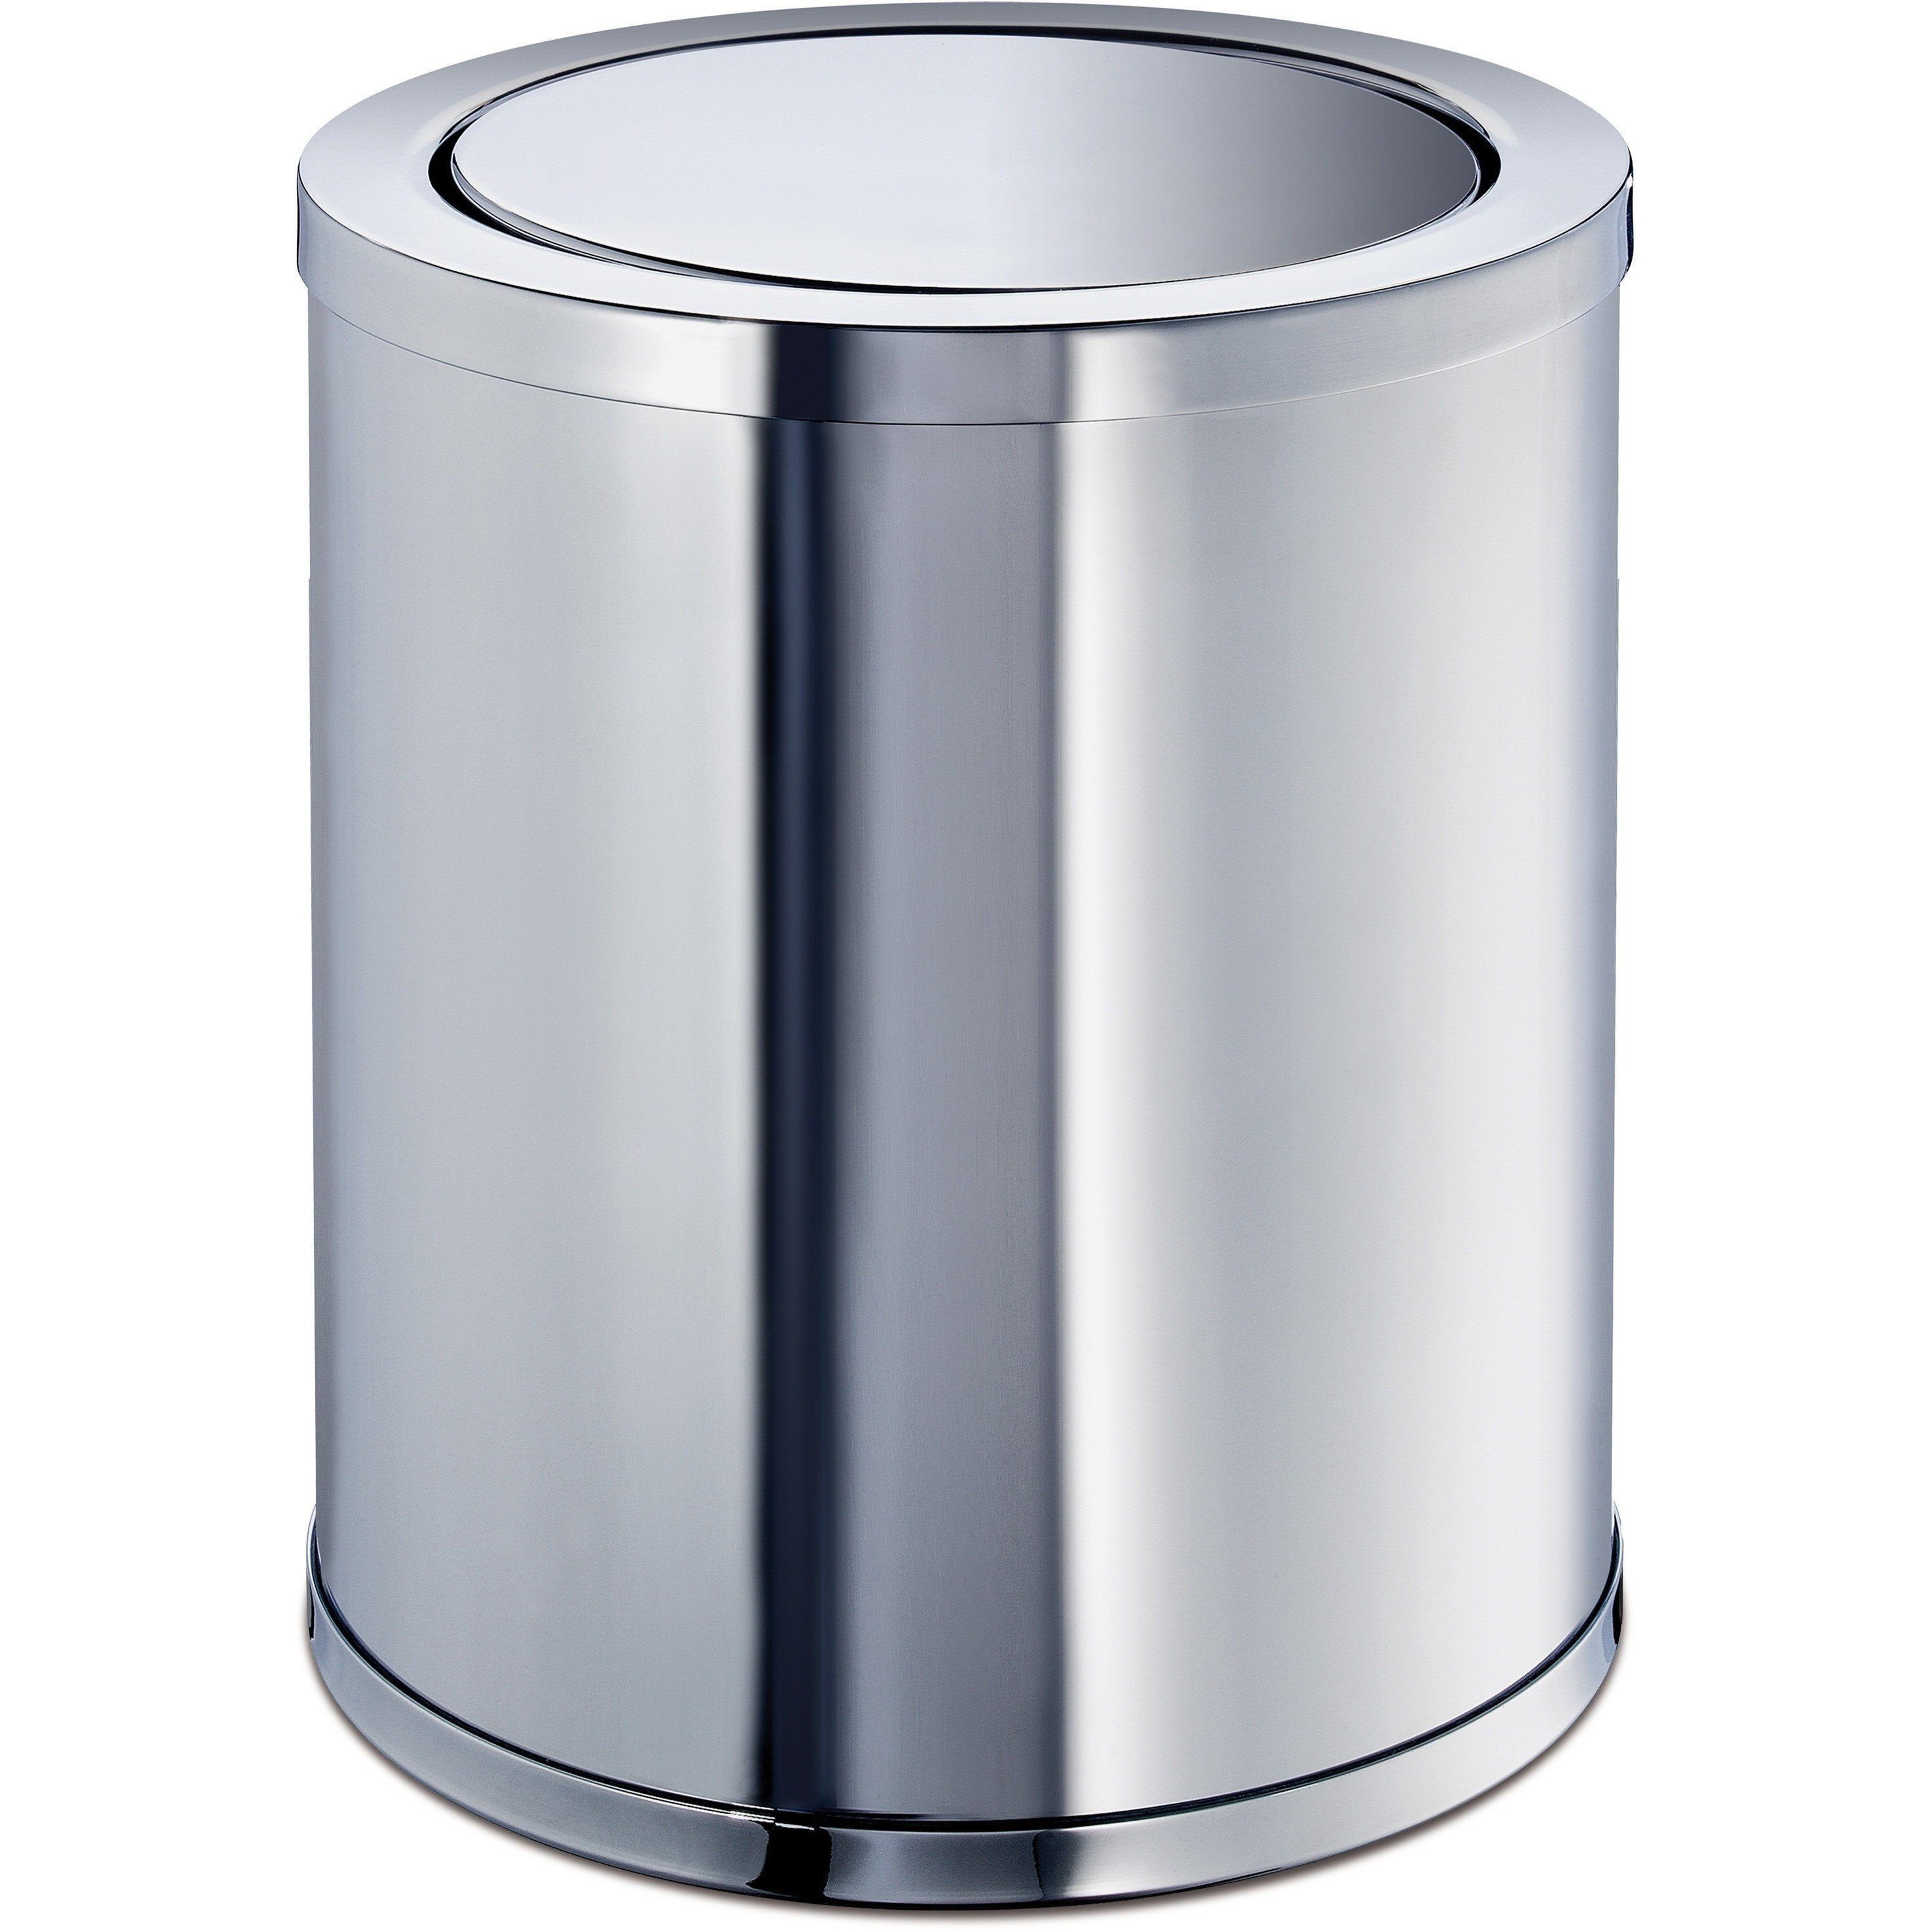 Blanco Countertop Waste Management Stainless Steel Rim And Lid